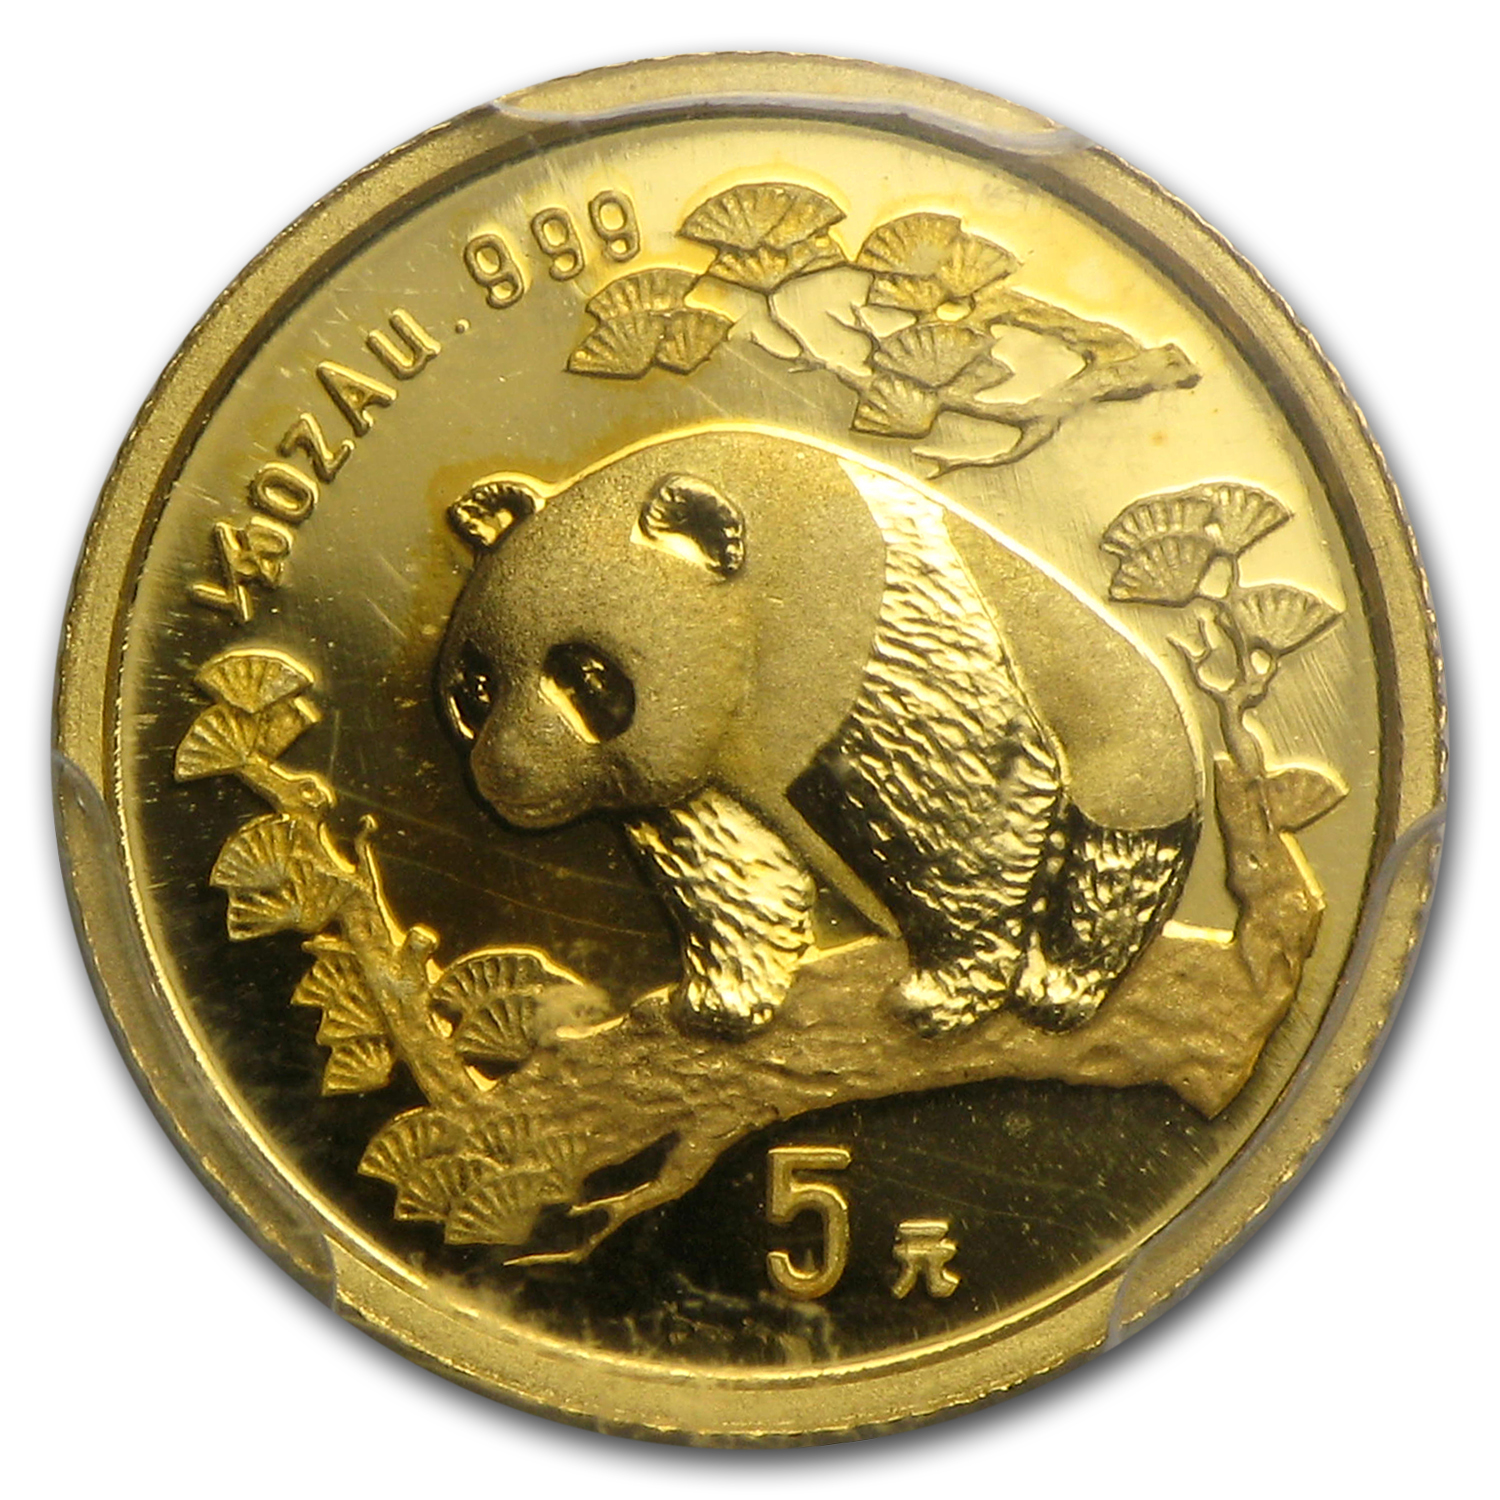 1997 China 1/20 oz Gold Panda Large Date MS-69 PCGS